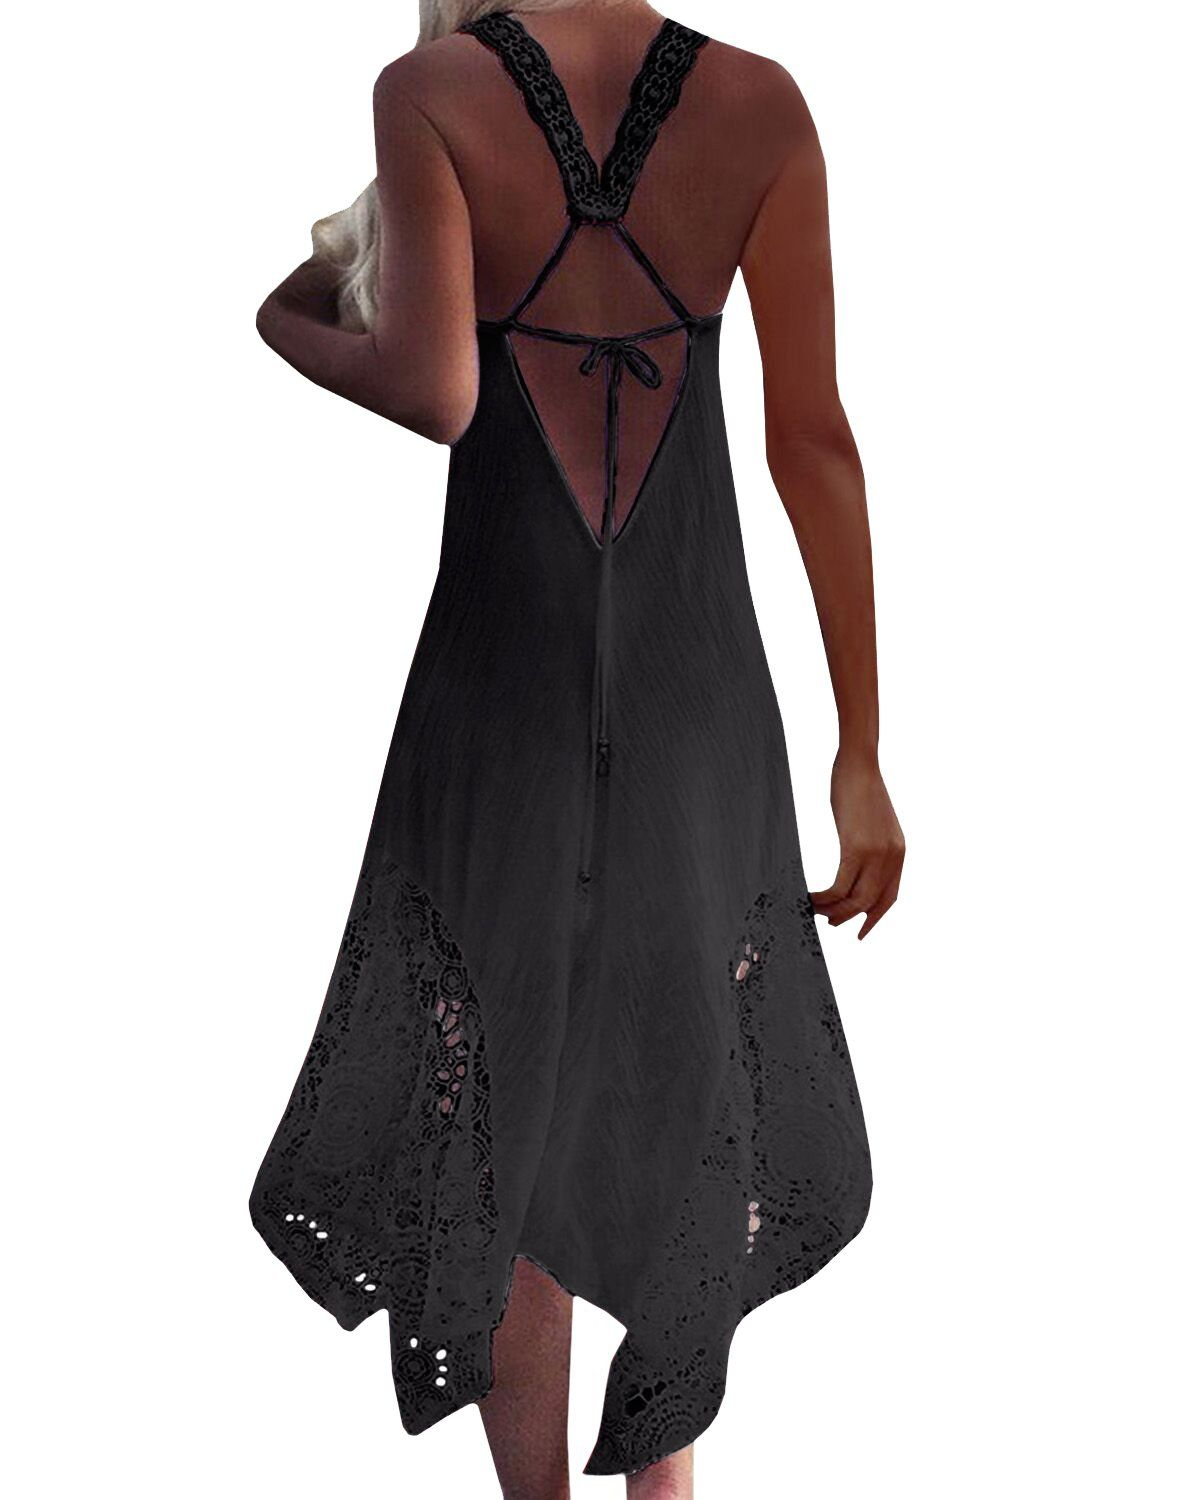 fc87b45b8e56 StyleDome Womens Strappy Lace Crochet Spaghetti Backless Halter Beach  Sundress Sleeveless Bohemian Maxi Dress Black US 18 ** Check out the image  by visiting ...